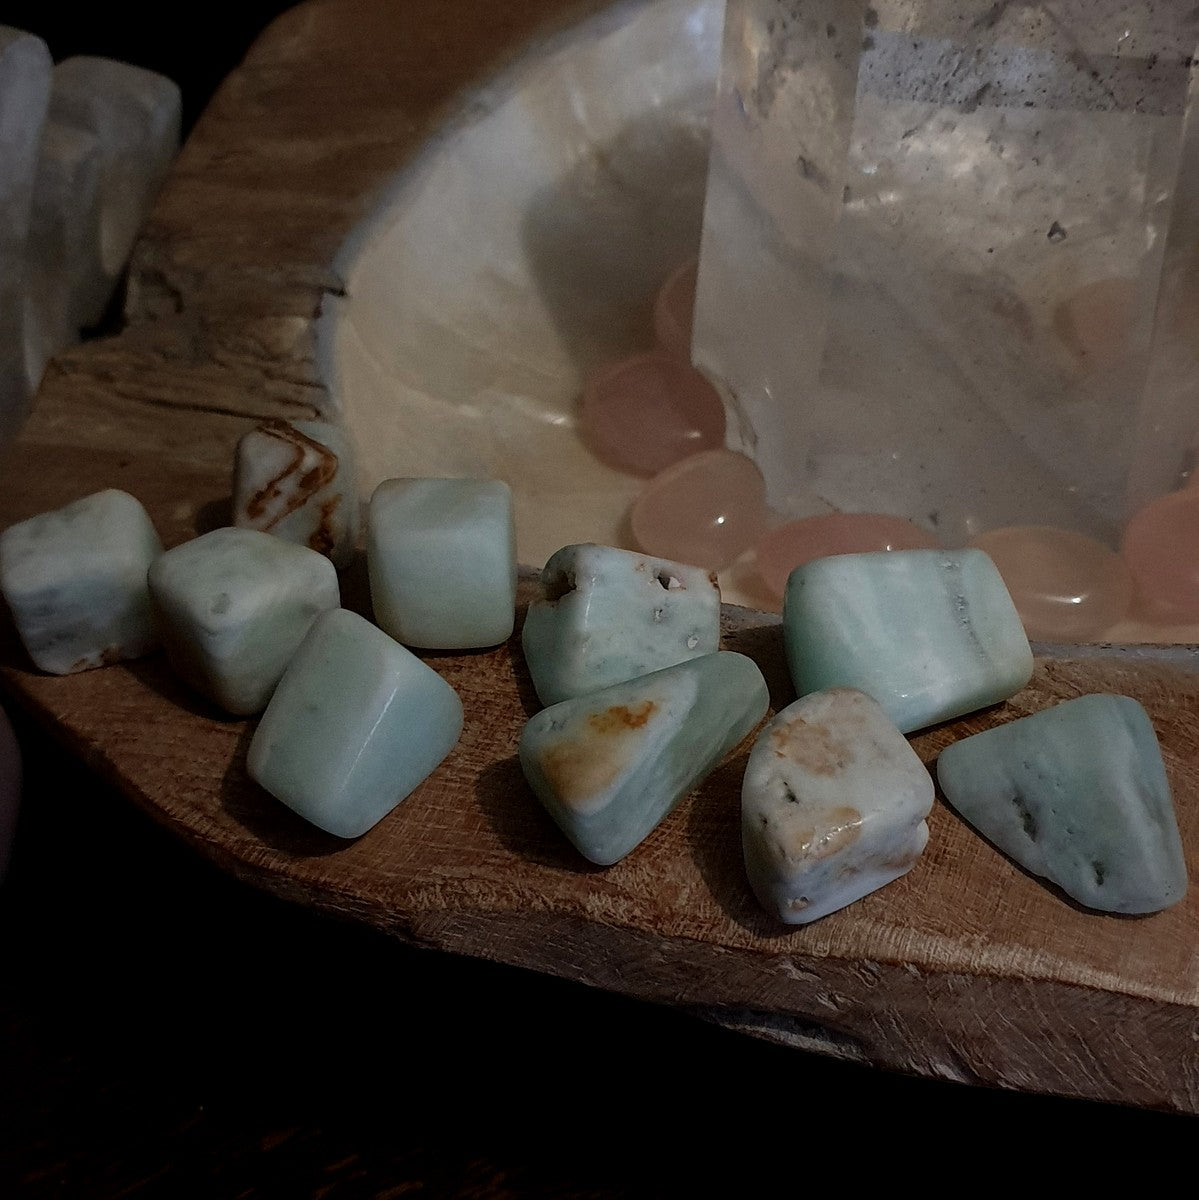 Caribbean Calcite Large Tumble - Now at Illiom Crystals - Afterpay Available